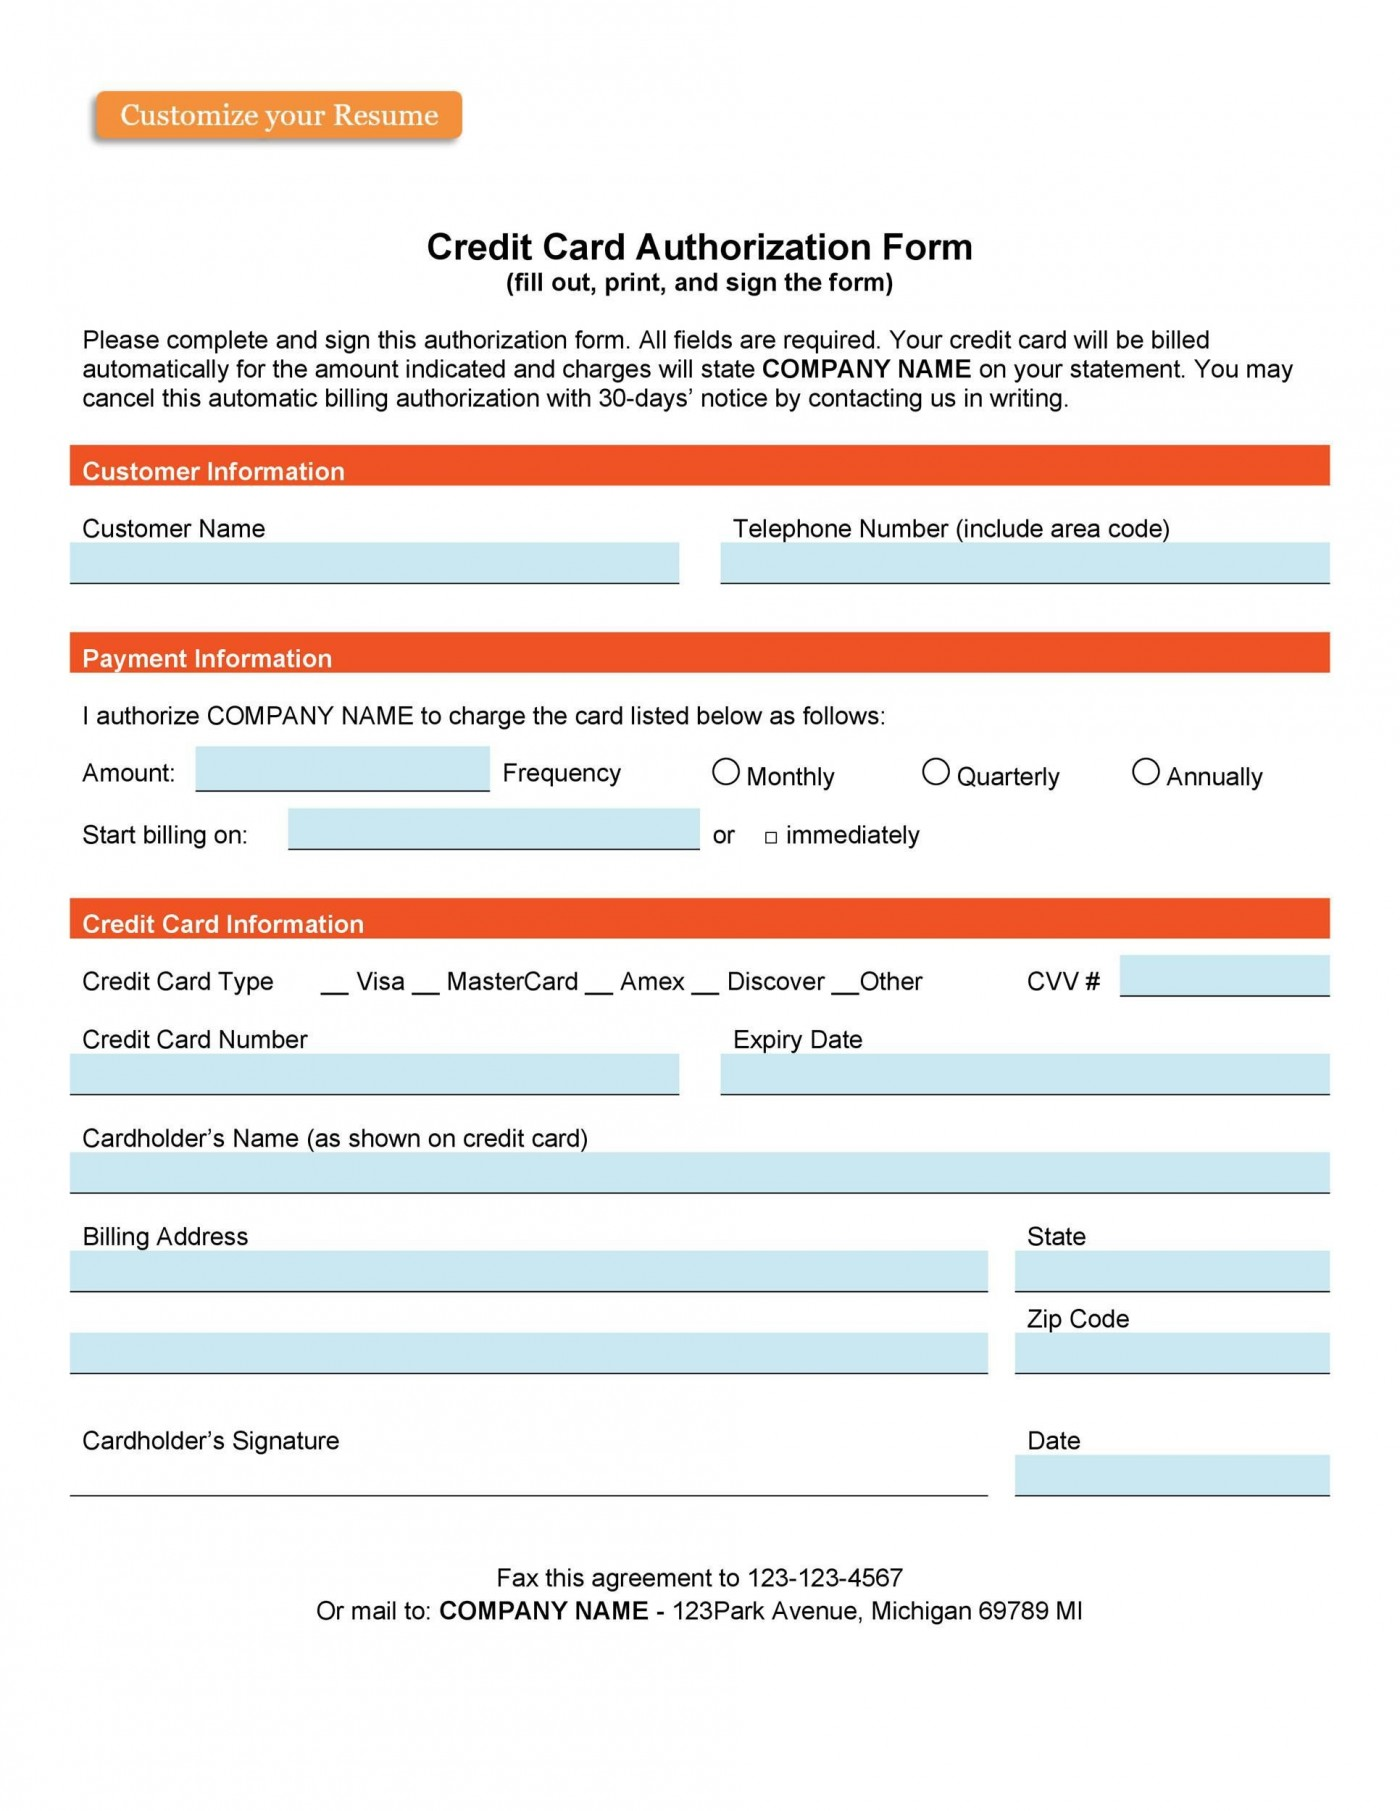 003 Incredible Credit Card Form Template Html Concept  Example Payment Cs1400